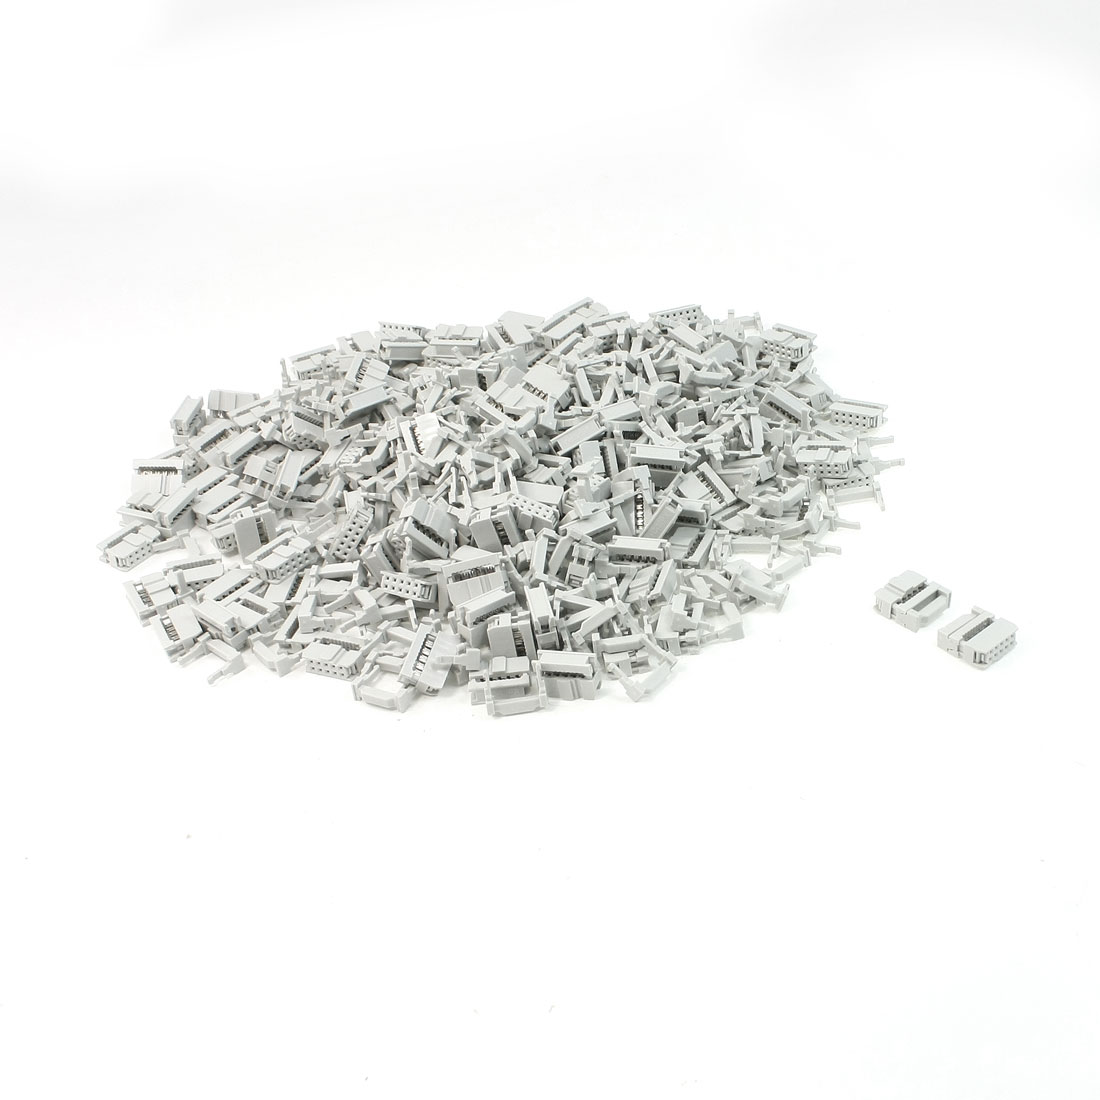 200 Pcs 2 Rows 10 Pin IDC Socket Connector female Header 2.2mm FC-10P Light Gray